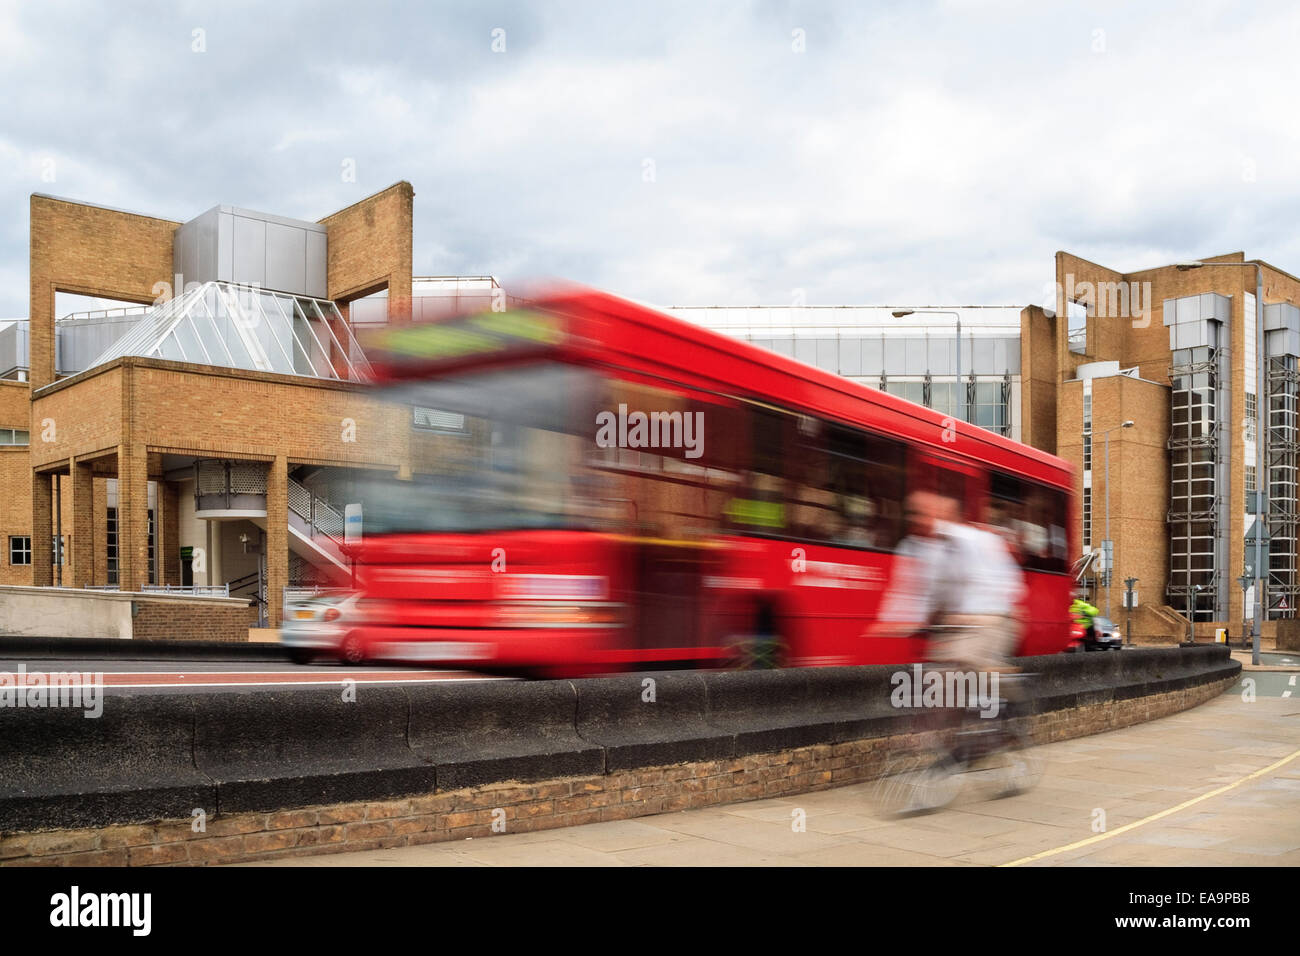 blurred motion image of cyclist and red bus in Kingston, London, UK - Cycle lane separated from traffic by a wall. - Stock Image